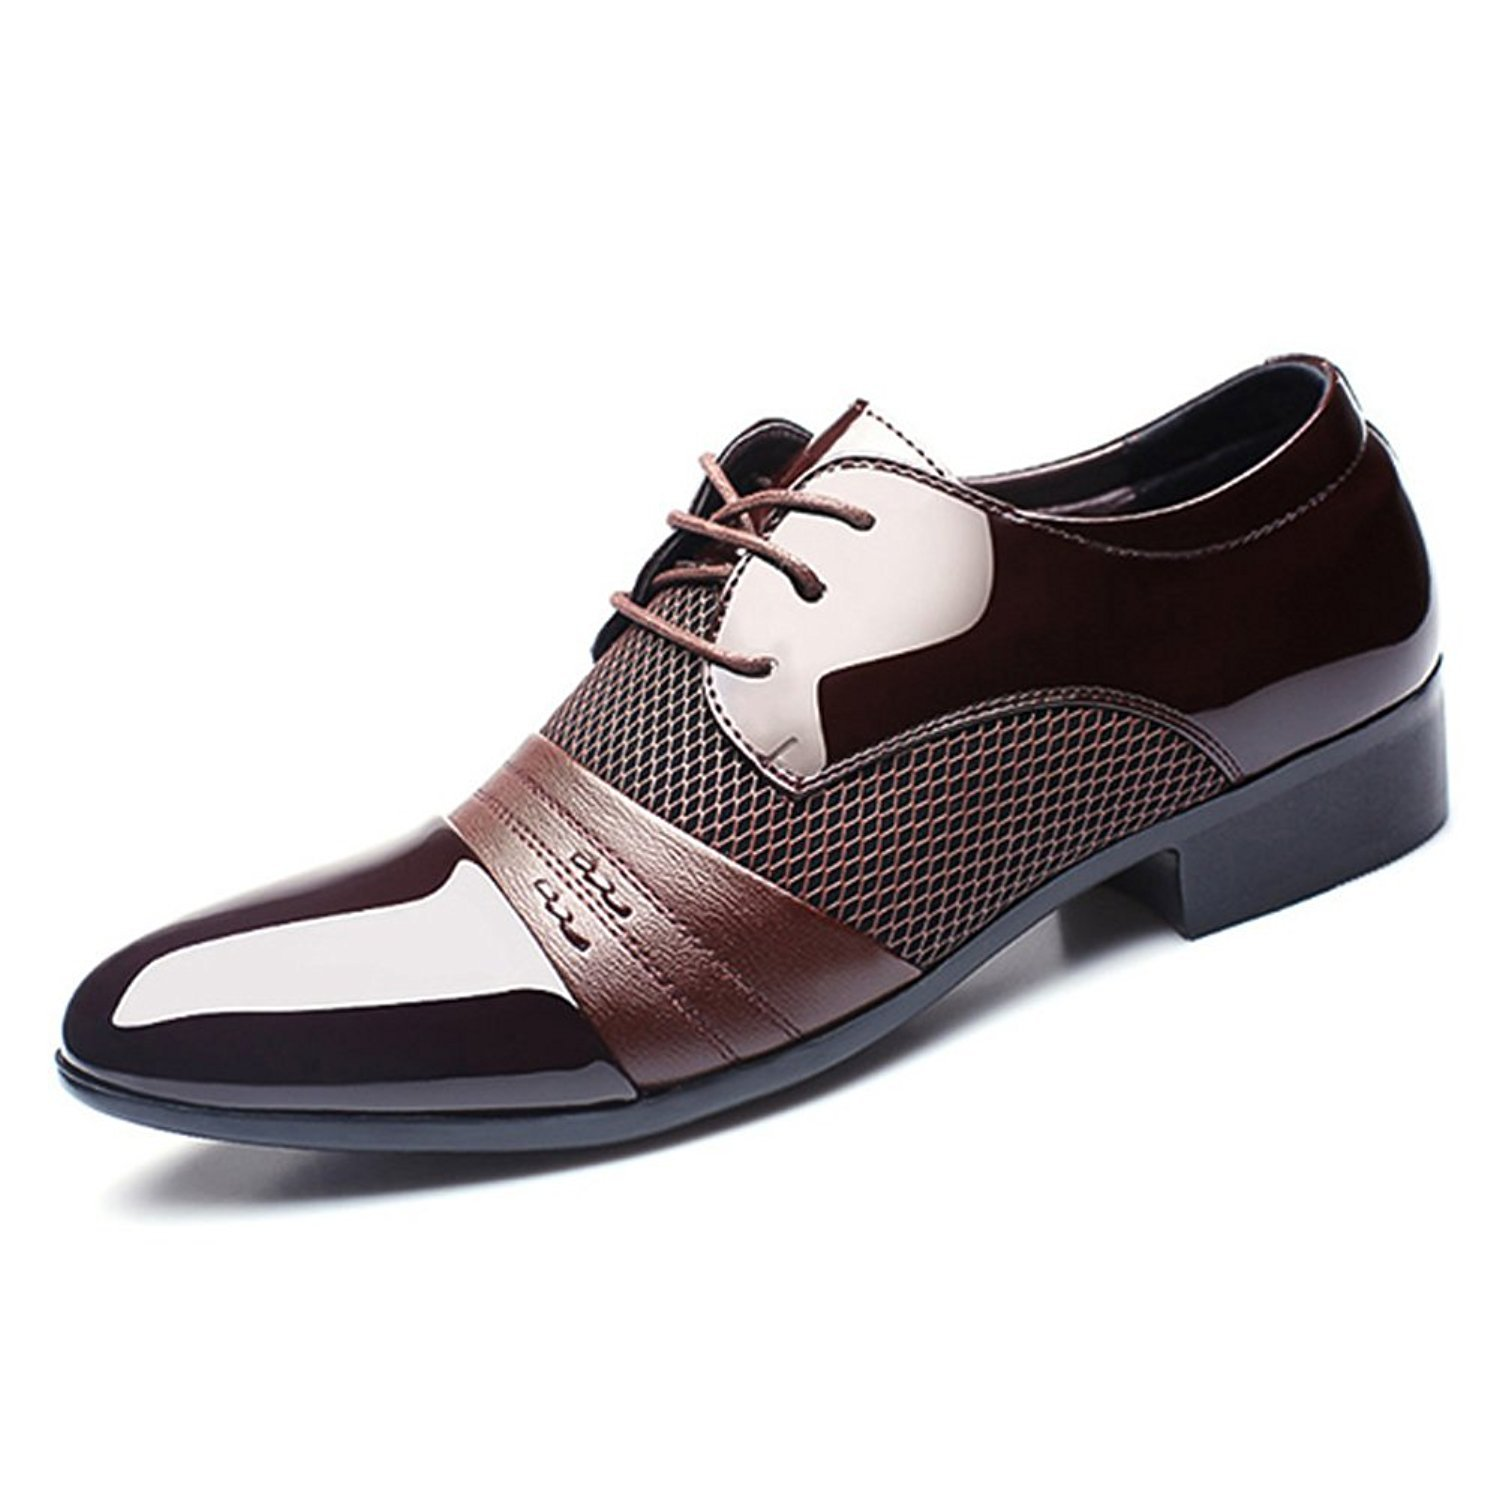 Seakee Men's Classic Breathable Oxford Lace-up Tuxedo Dress Shoes Brown US 8.5